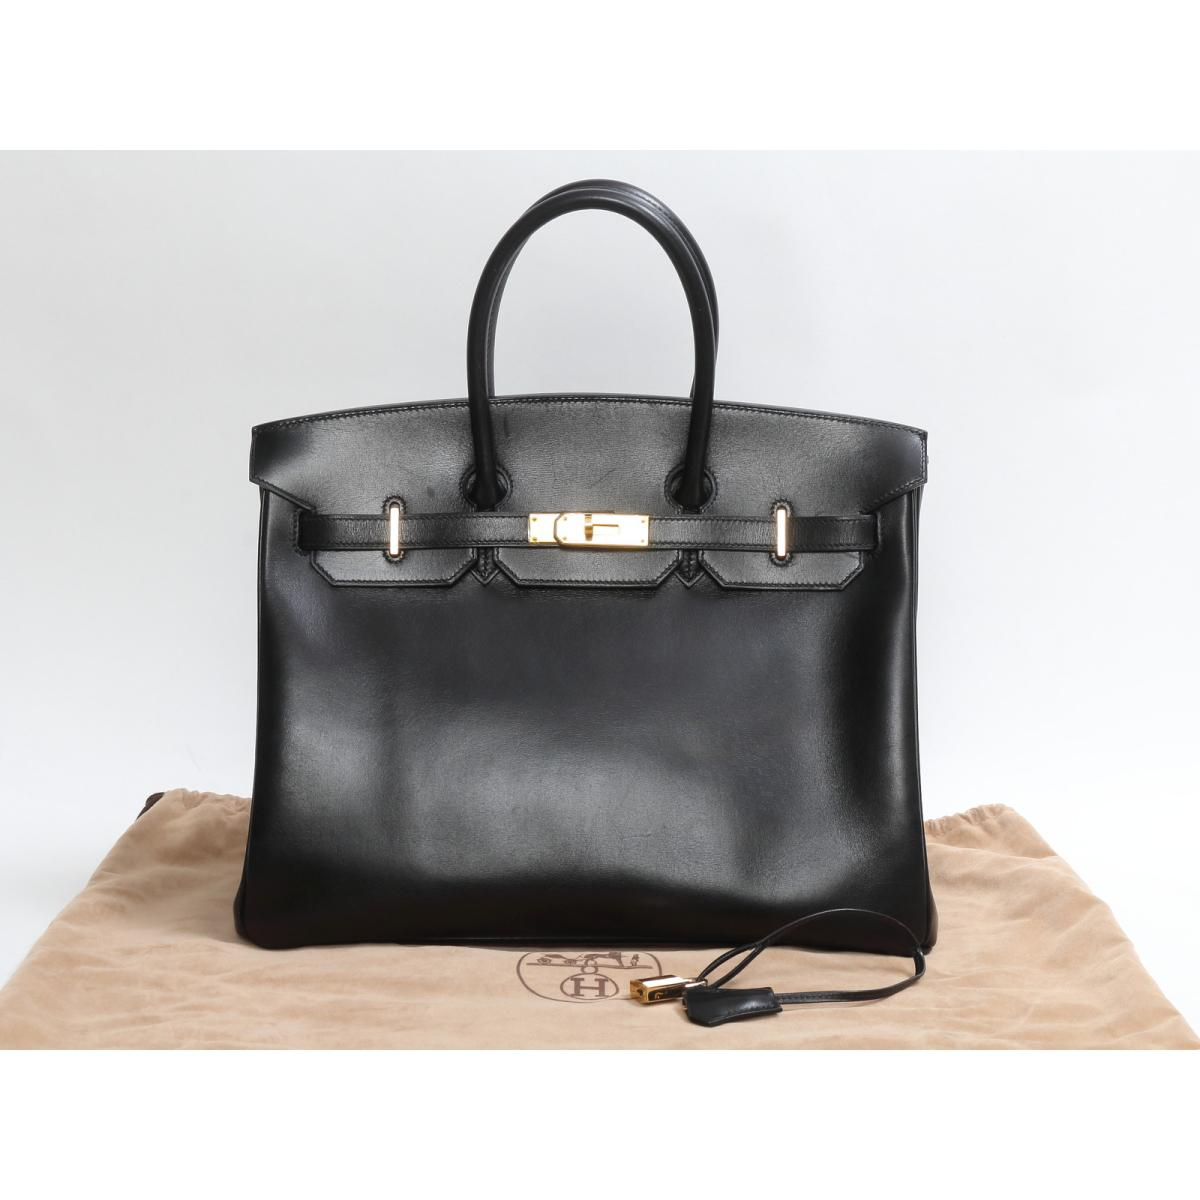 79ae77f156 (Free shipping) Auth HERMES Birkin 35 Hand Tote Bag Box Calf Leather Black  x GHW Used